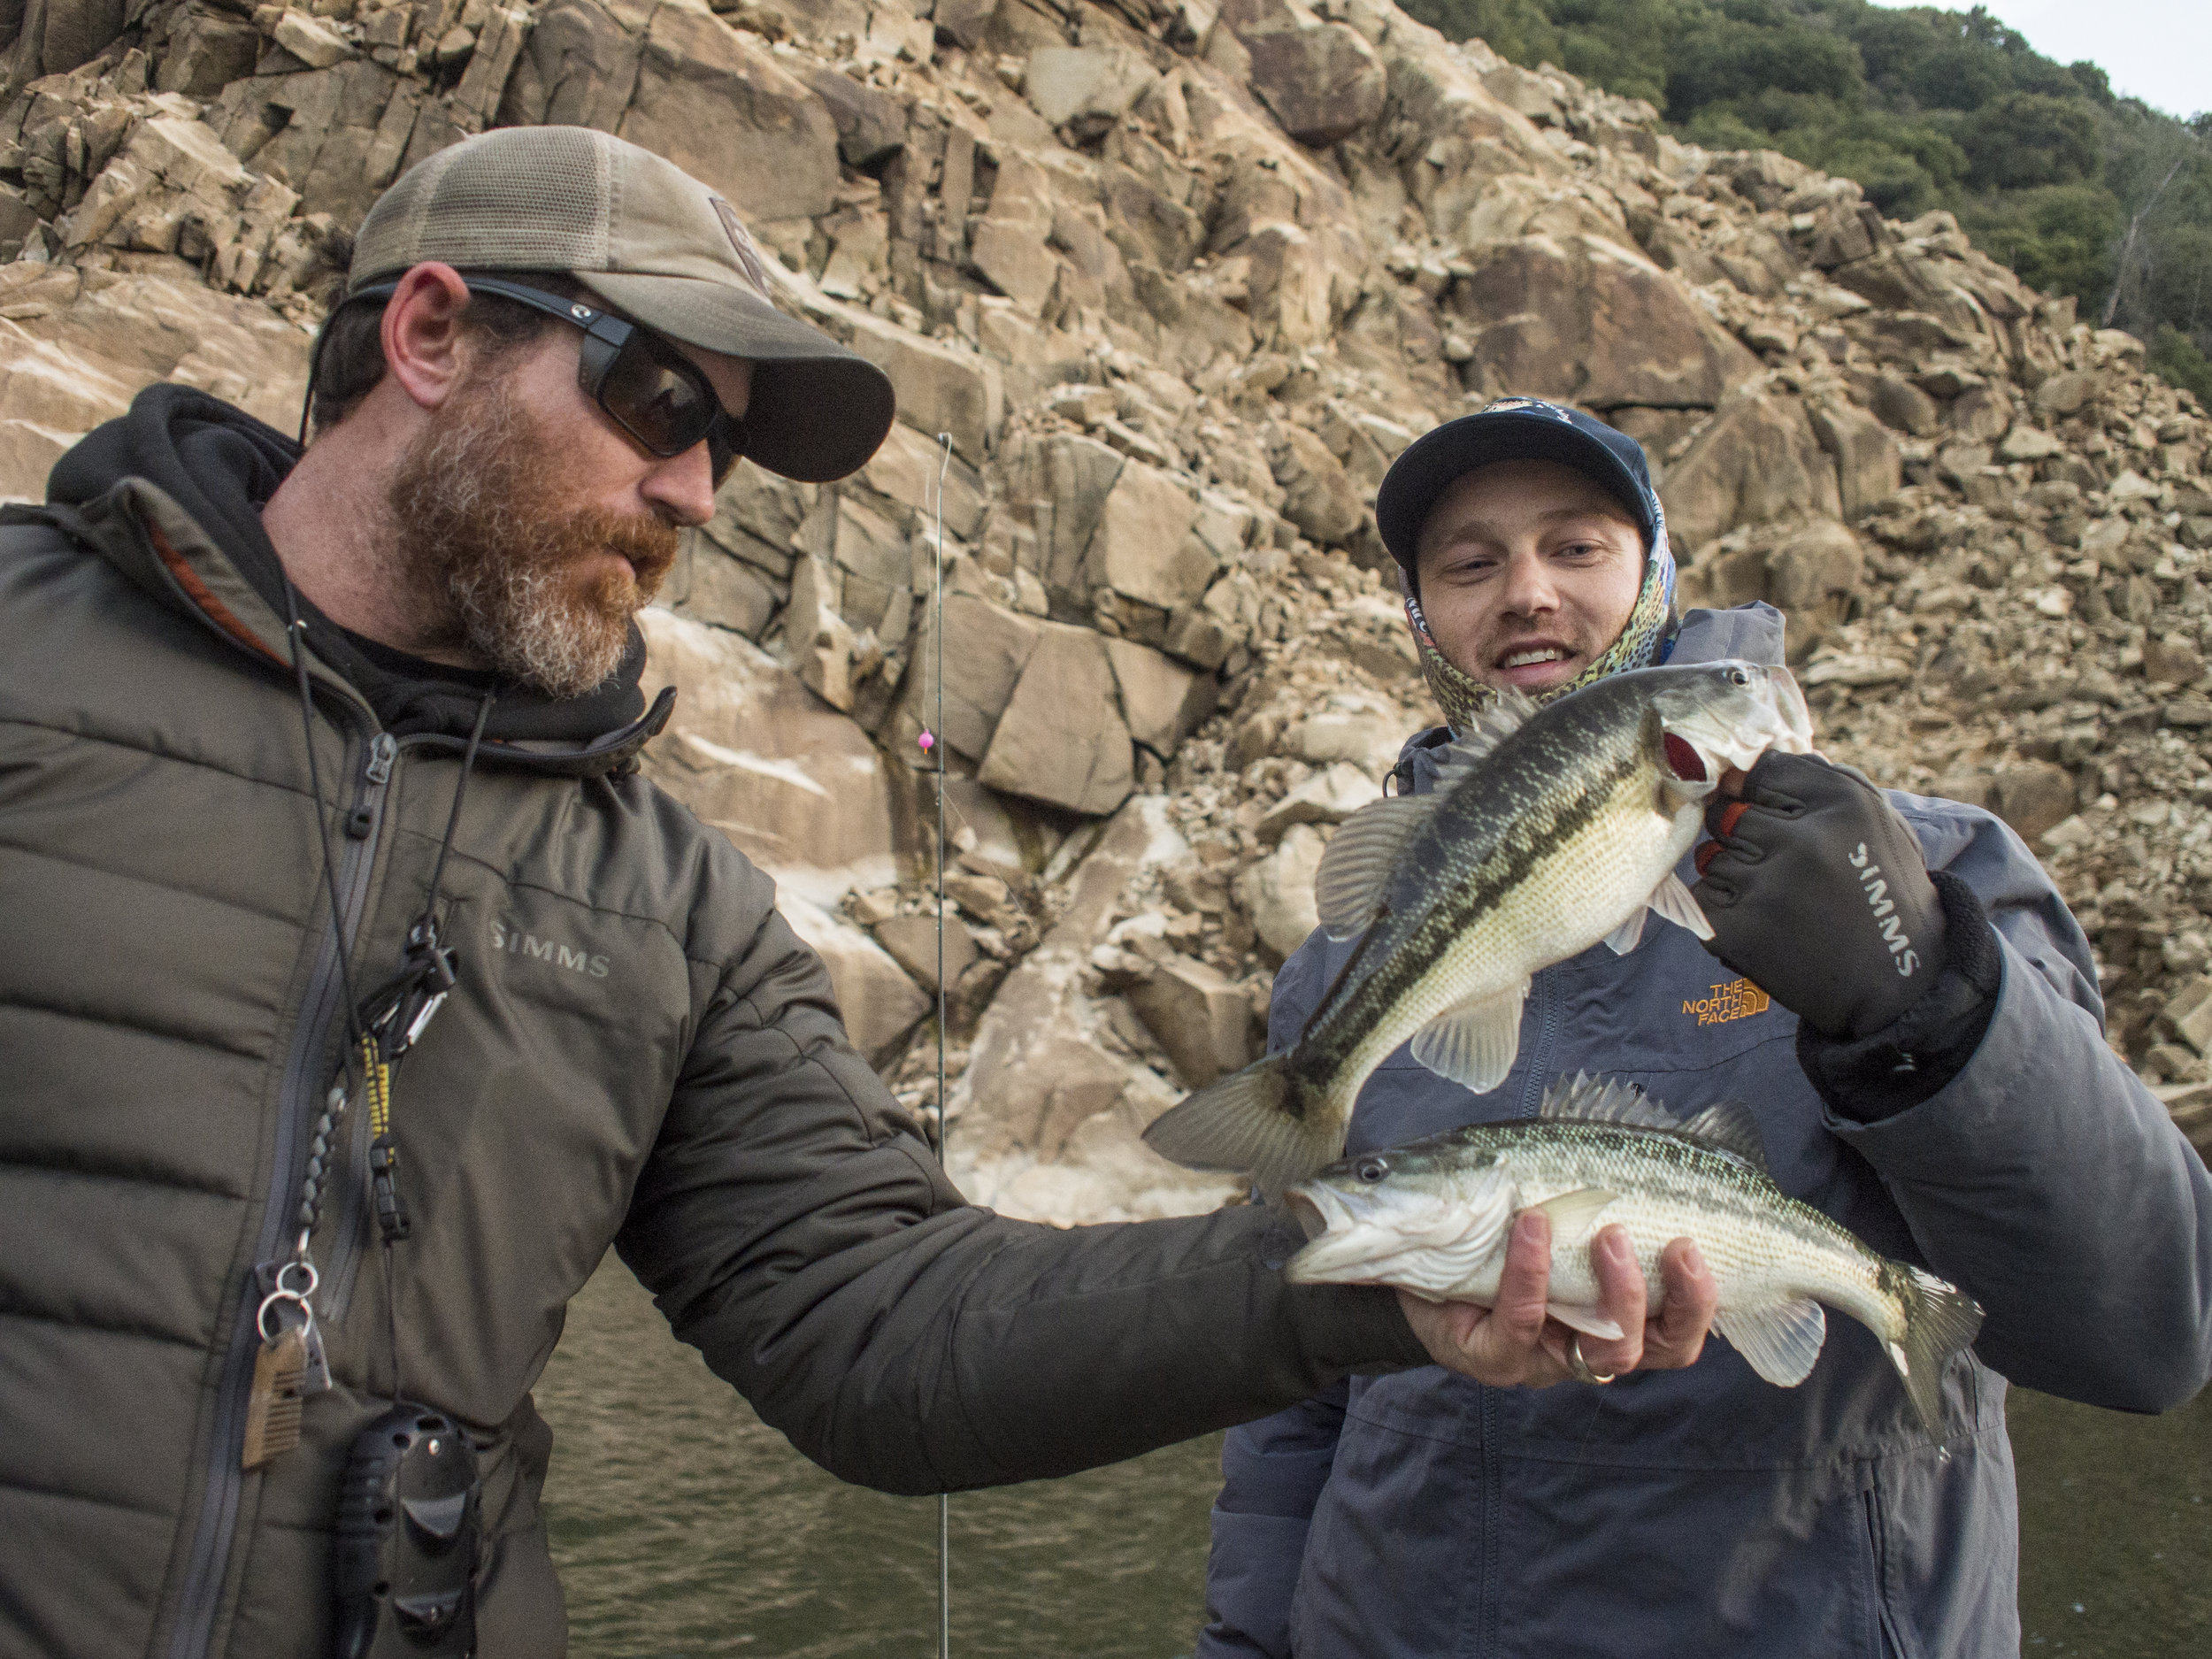 Guide Ryan Williams and Capt. Chuck Ragan have been pioneers of the Float'n Fly method in Northern California